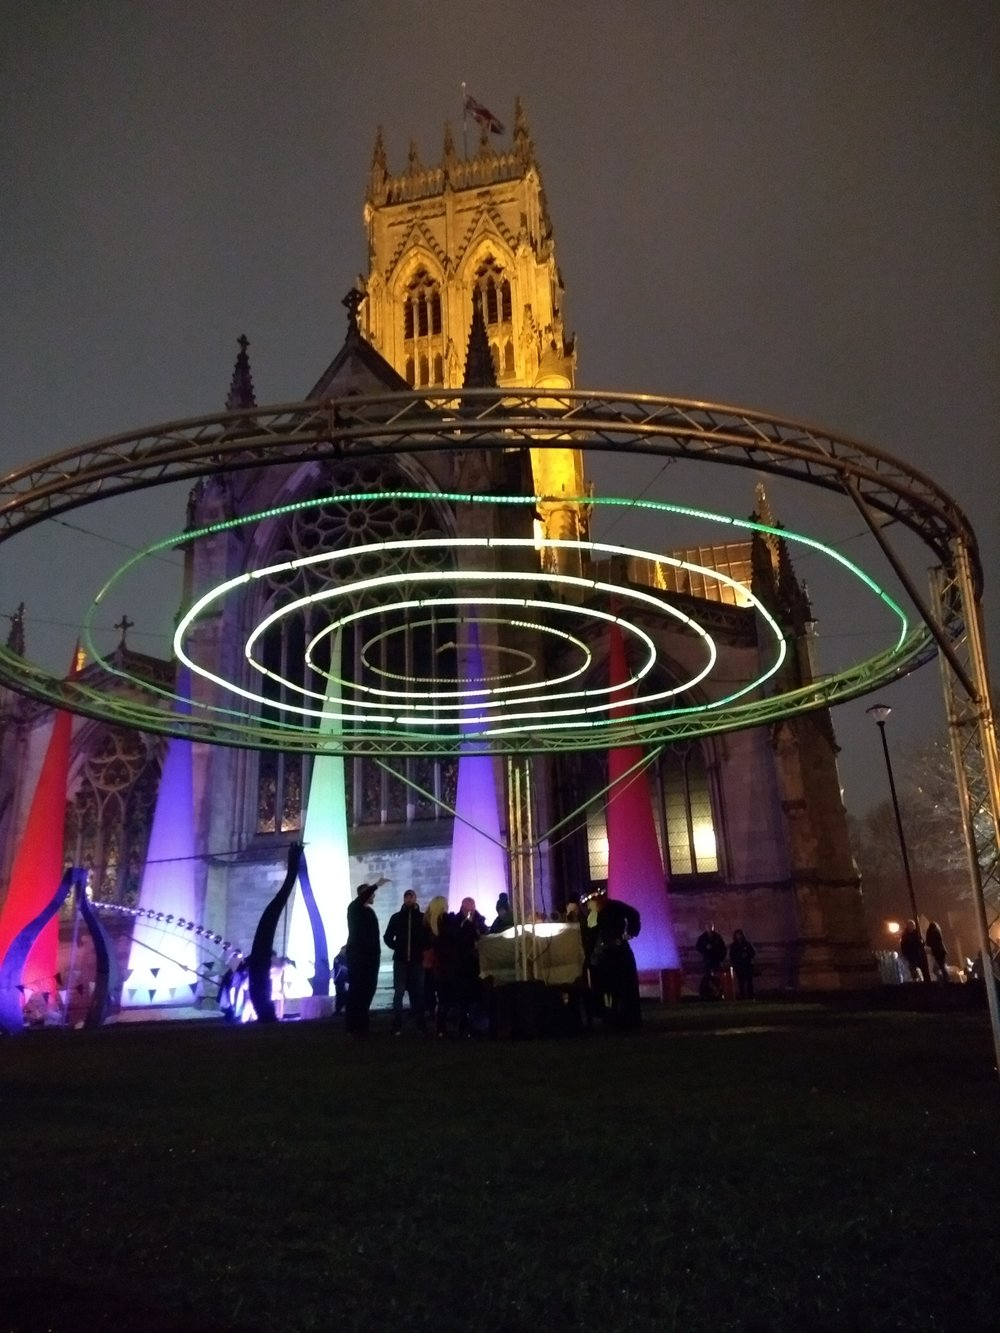 Spiral of Lights outside Doncaster Minster